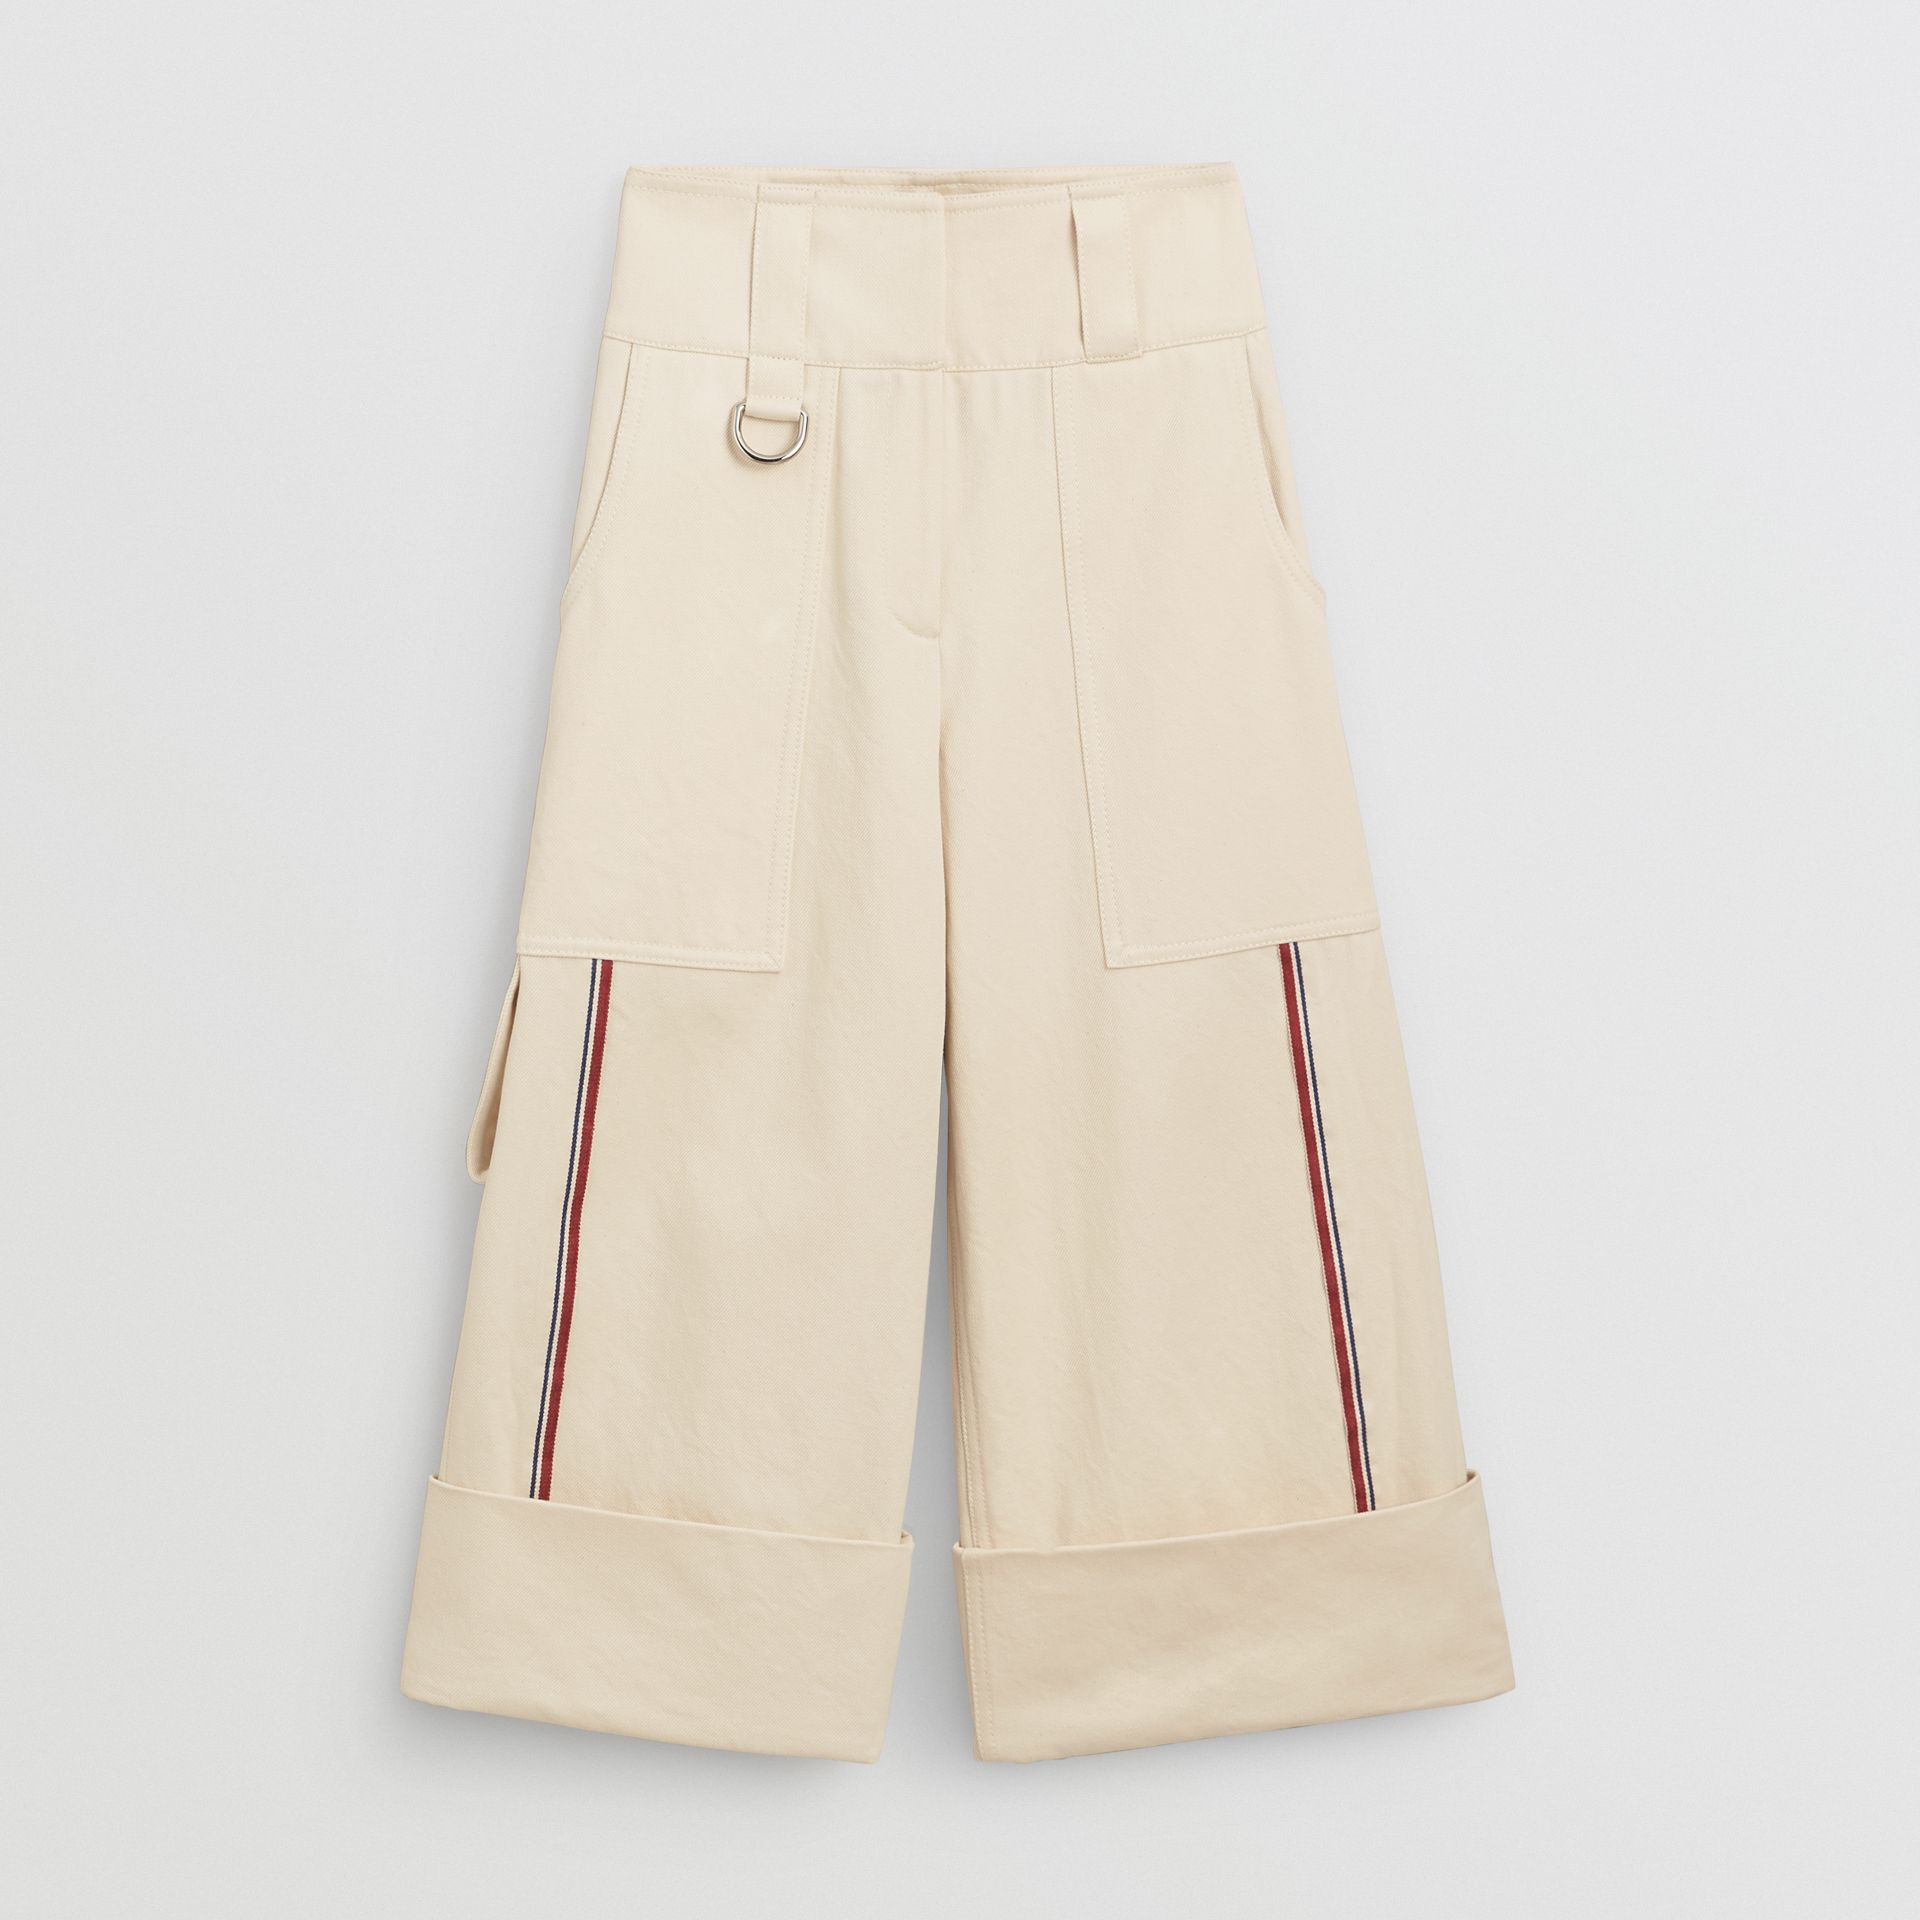 Pantalon ample 7/8 en coton à rayures (Blanc Naturel) - Femme | Burberry - photo de la galerie 3